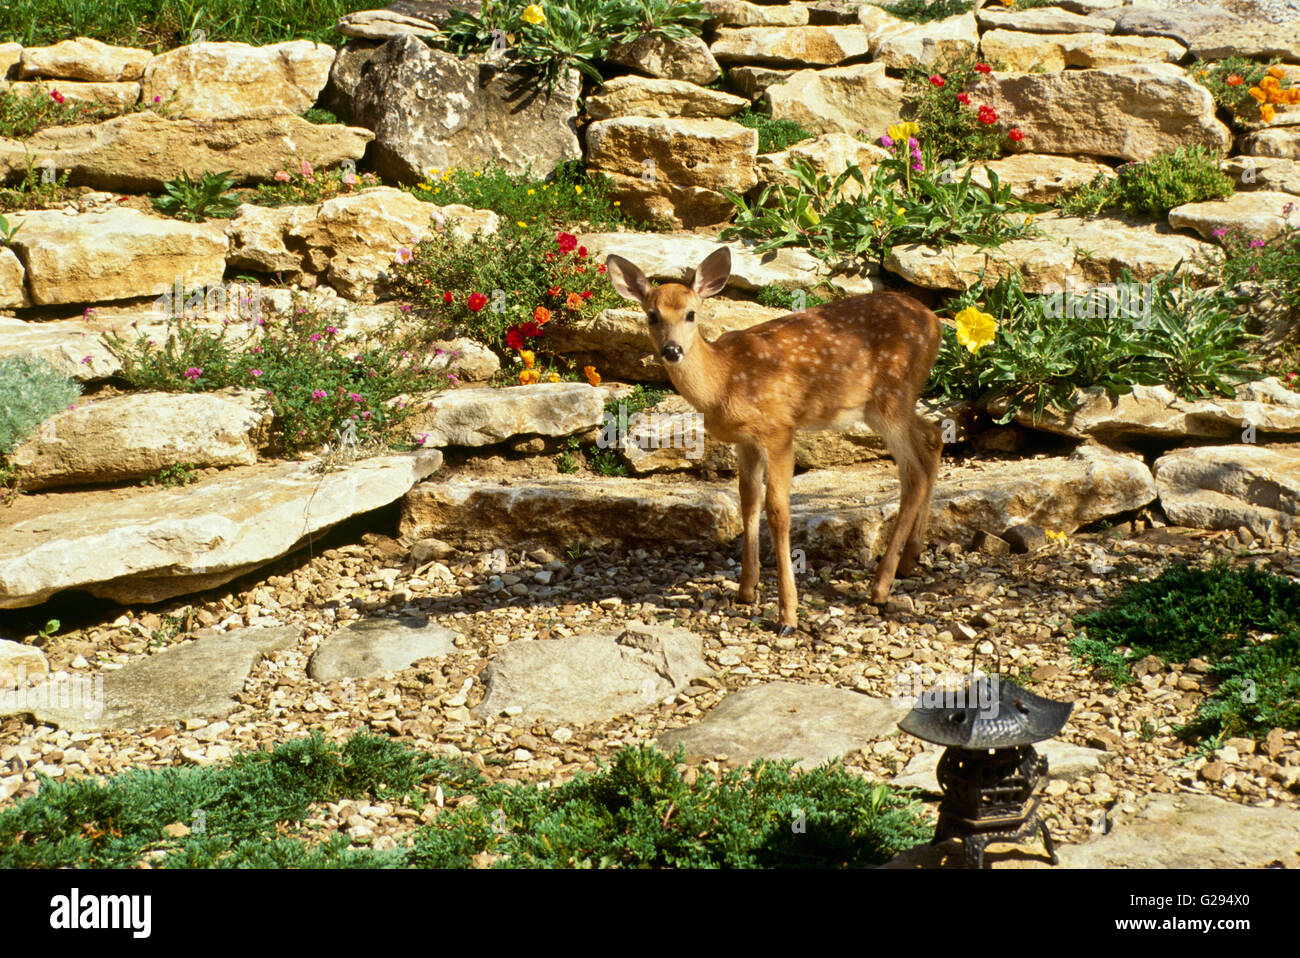 White tailed deer in landscape rock garden at home, MIssouri USA - Stock Image